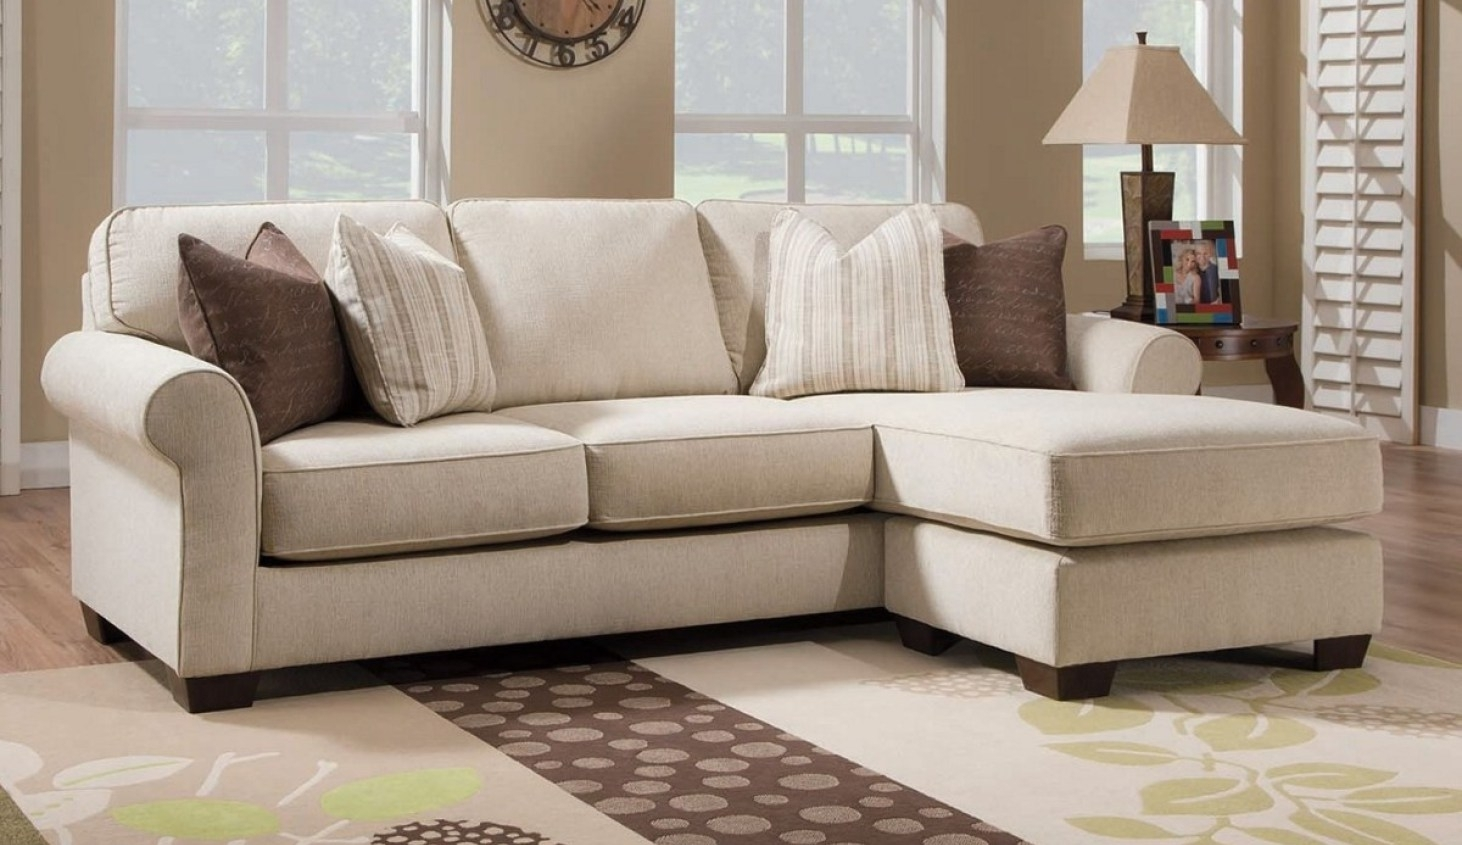 Surprising Sofa Idea For Sofa Sectional Sofas Austin Tx In Sectional Sofas At Austin (View 8 of 10)